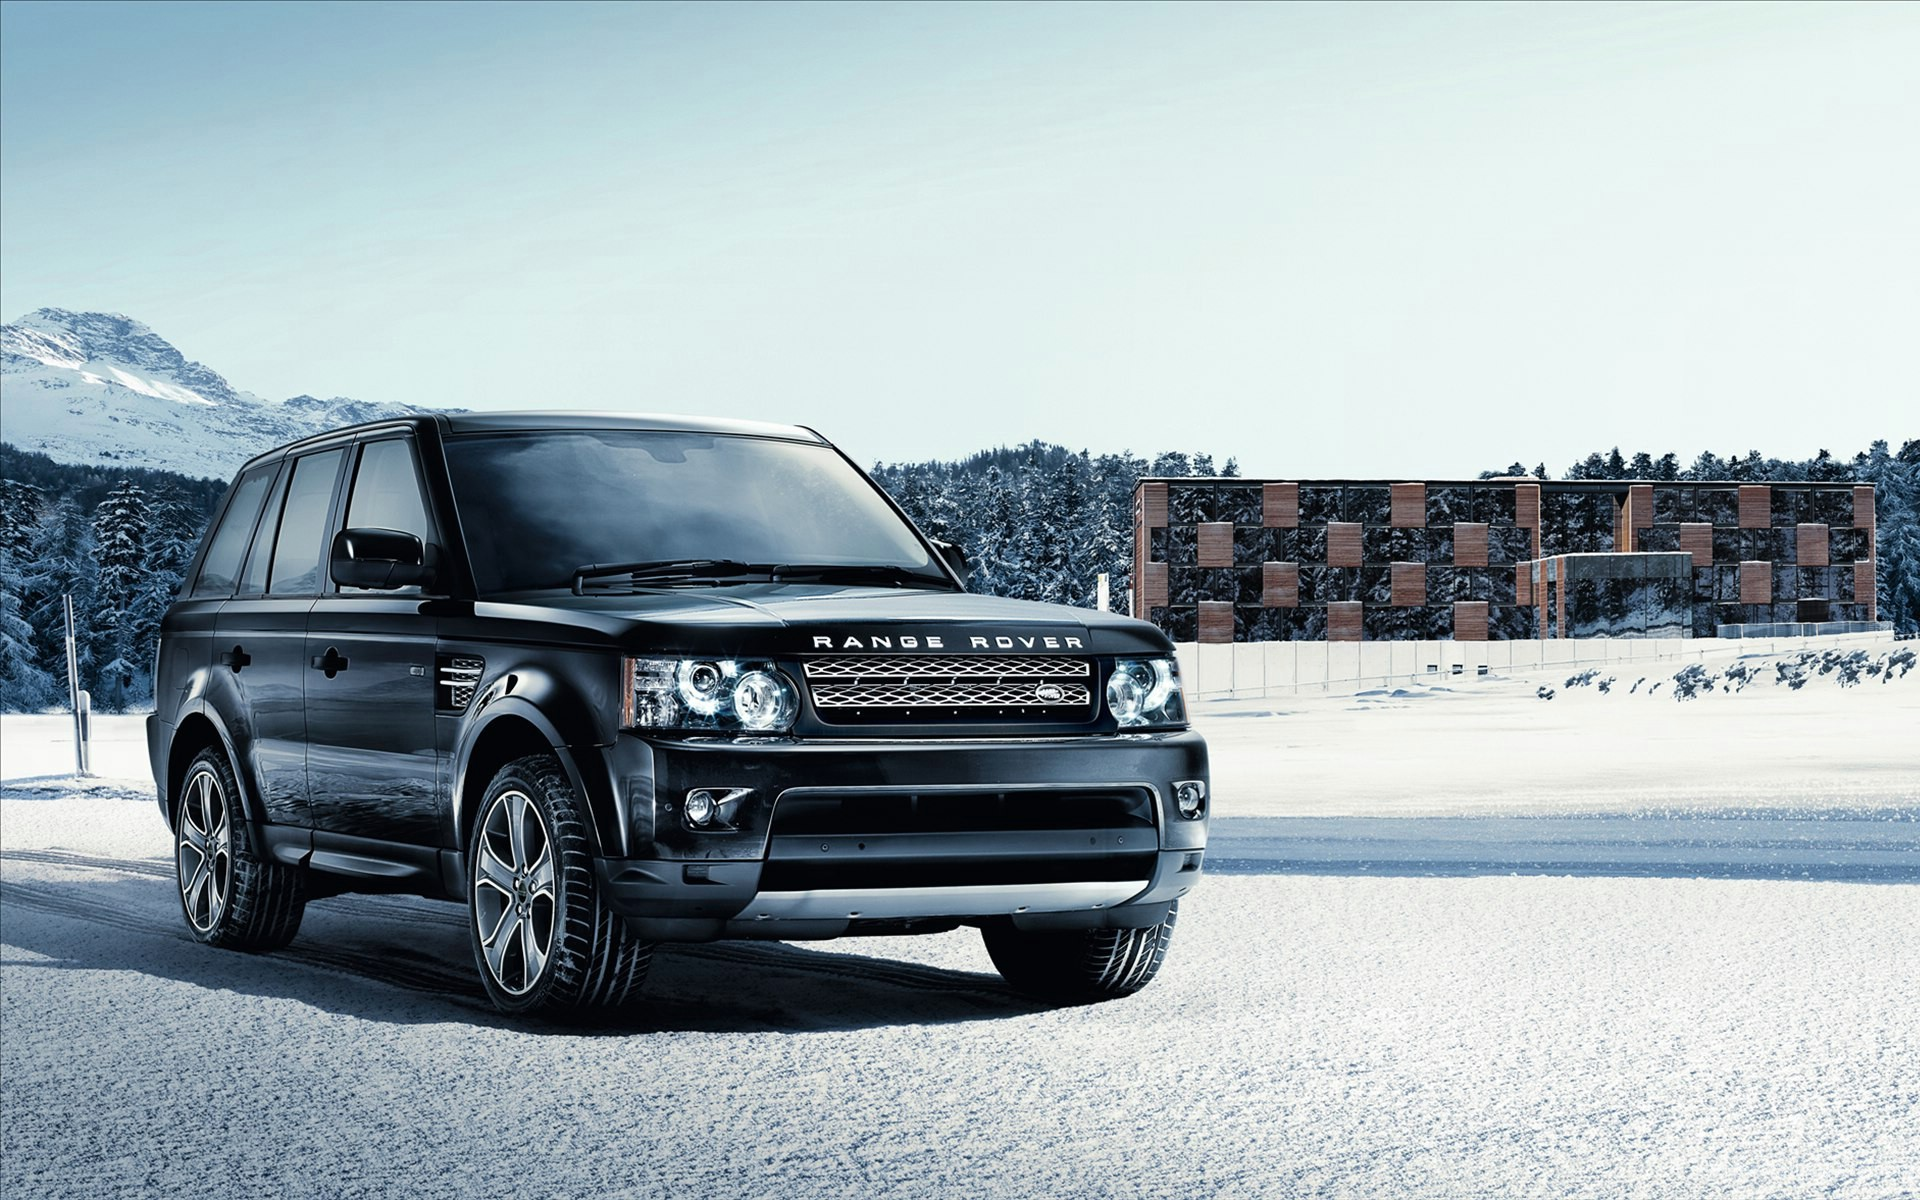 How To Make A Dynamic Wallpaper For Iphone X Range Rover Wallpaper 183 ①